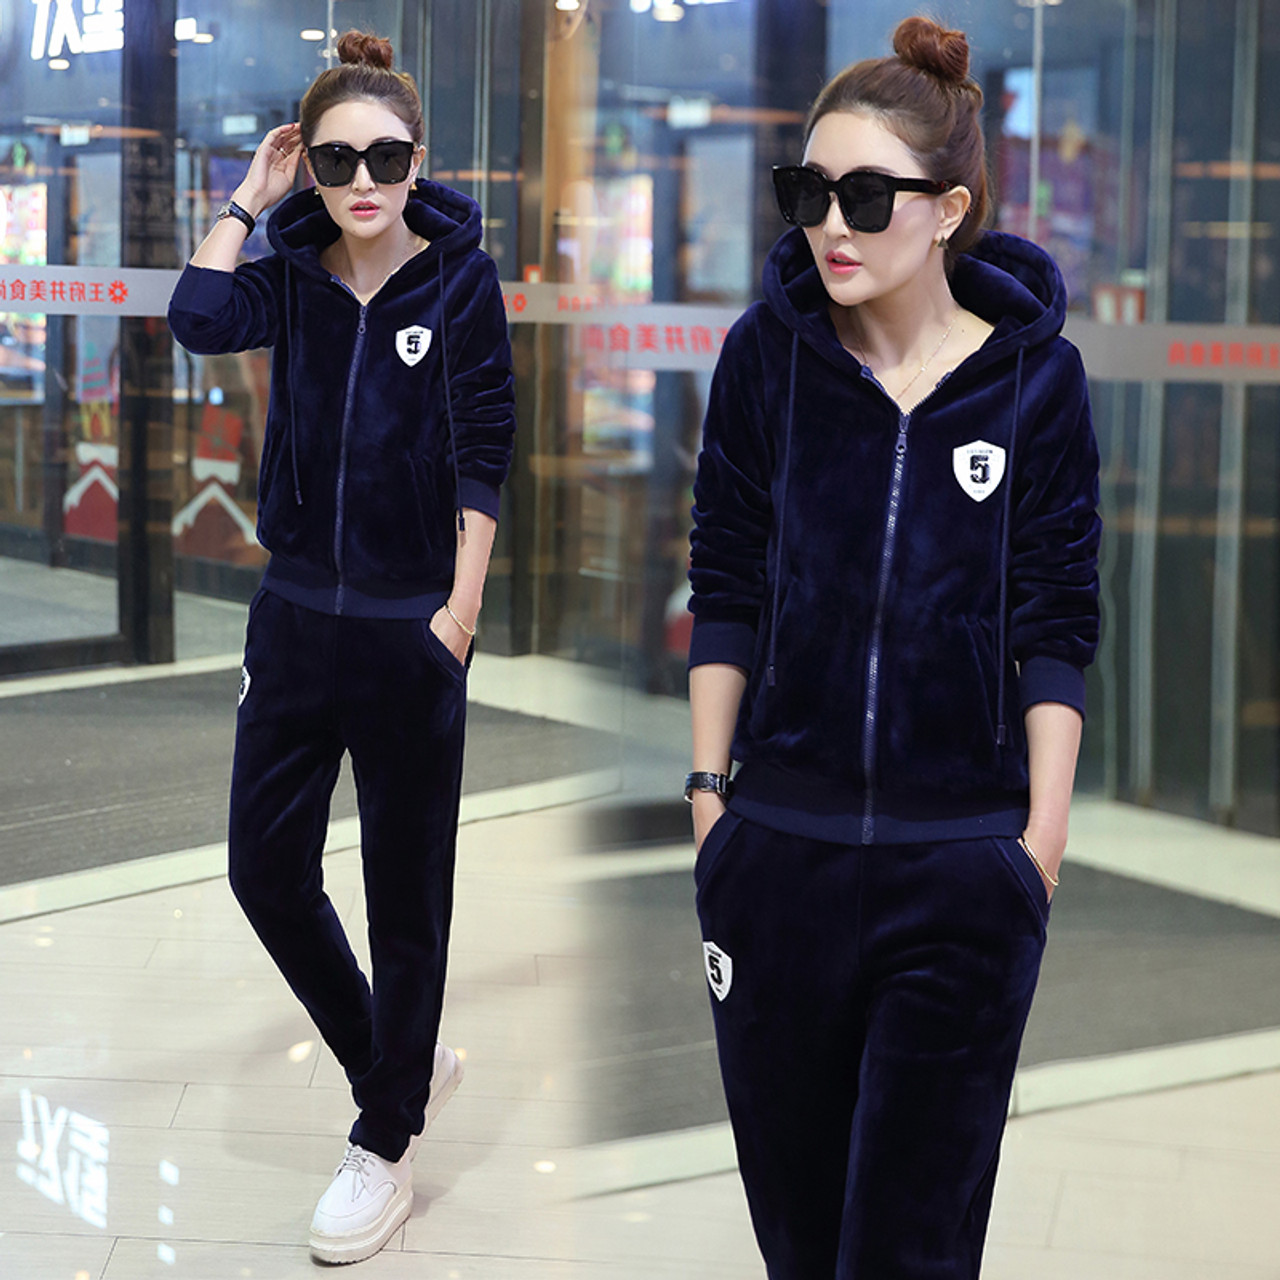 468ba69a Velvet tracksuit for women autumn and winter women's fashion large size  leisure suit female plus size jacket+pants 2 piece sets - OnshopDeals.Com